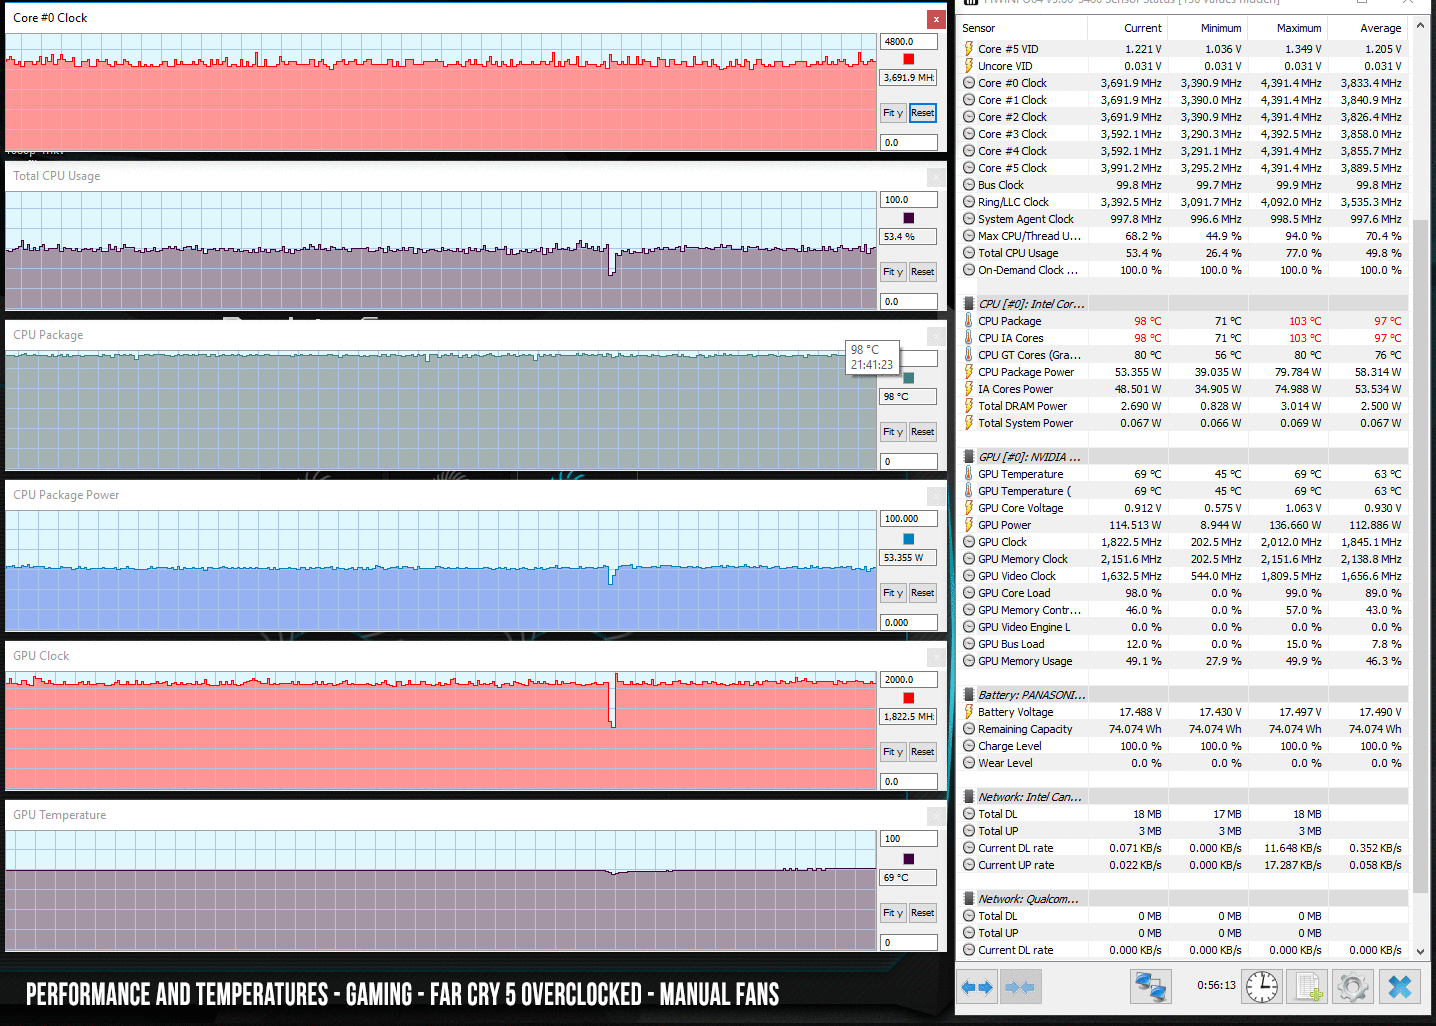 perf-temp-farcry5-overclocked-manual-fans